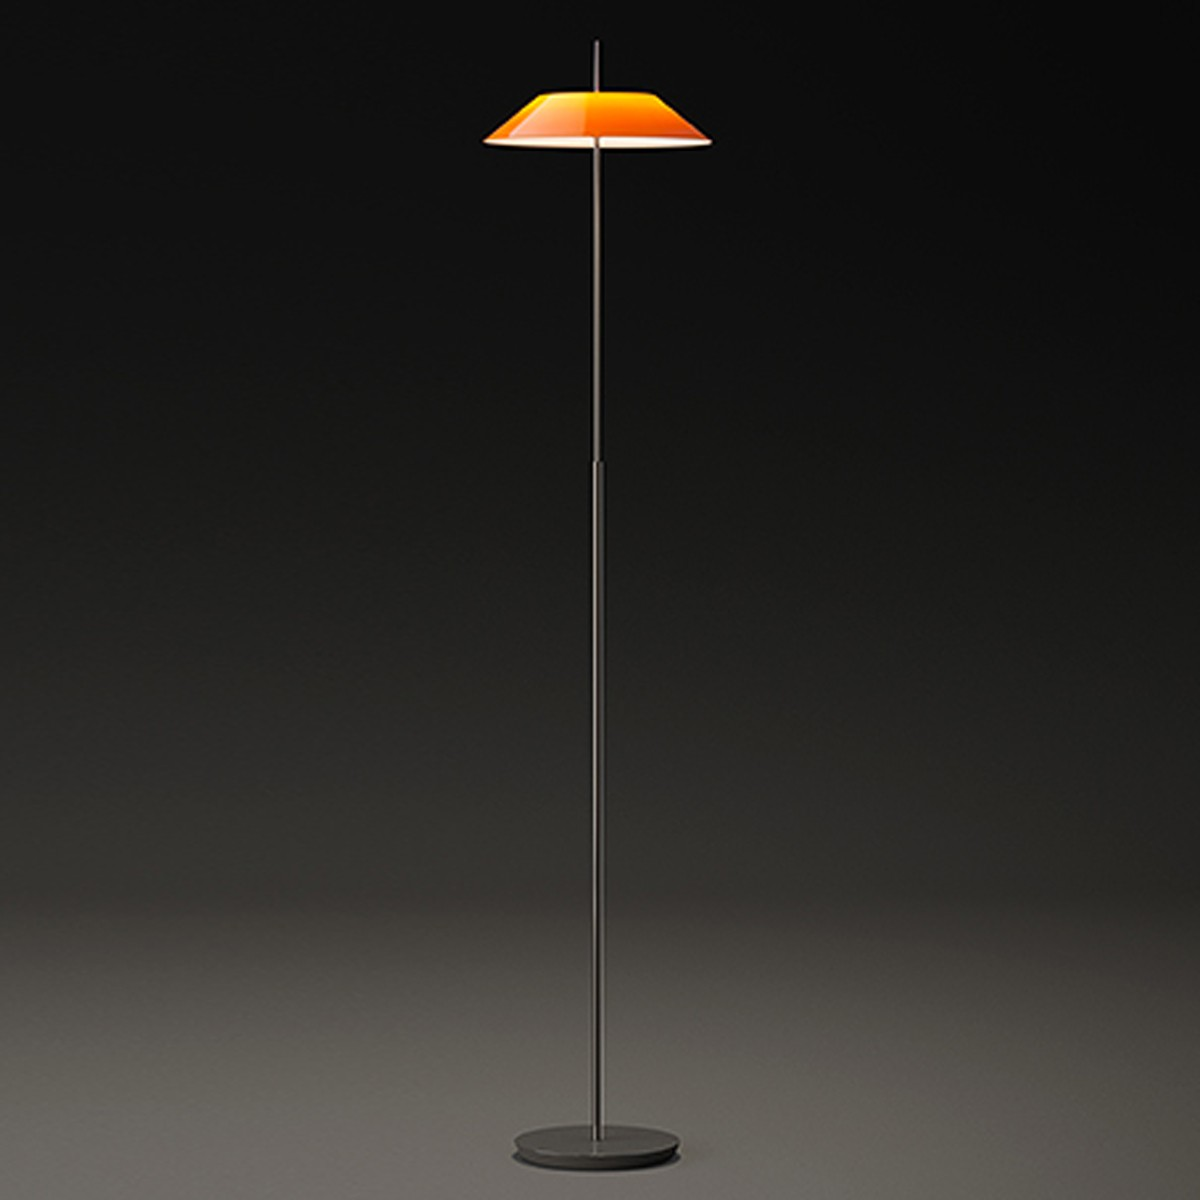 Vibia Mayfair 5510 Stehleuchte, Schirm: orange